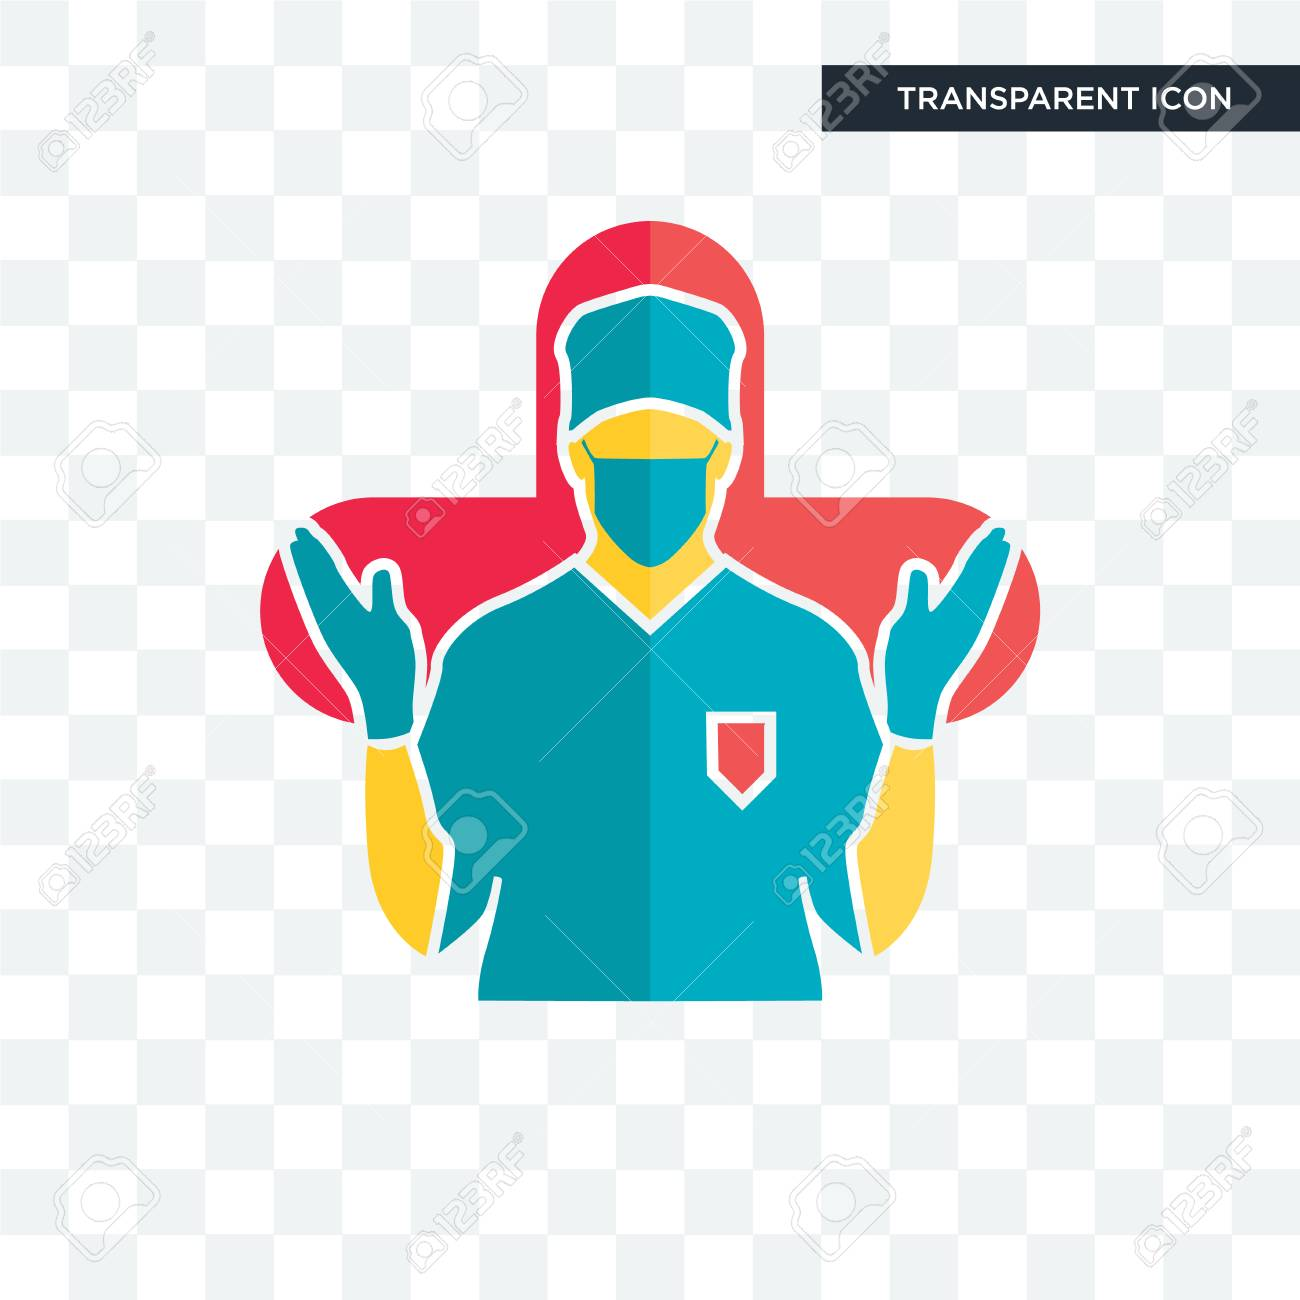 Surgeon Vector Icon Isolated On Transparent Background Surgeon Royalty Free Cliparts Vectors And Stock Illustration Image 108199638